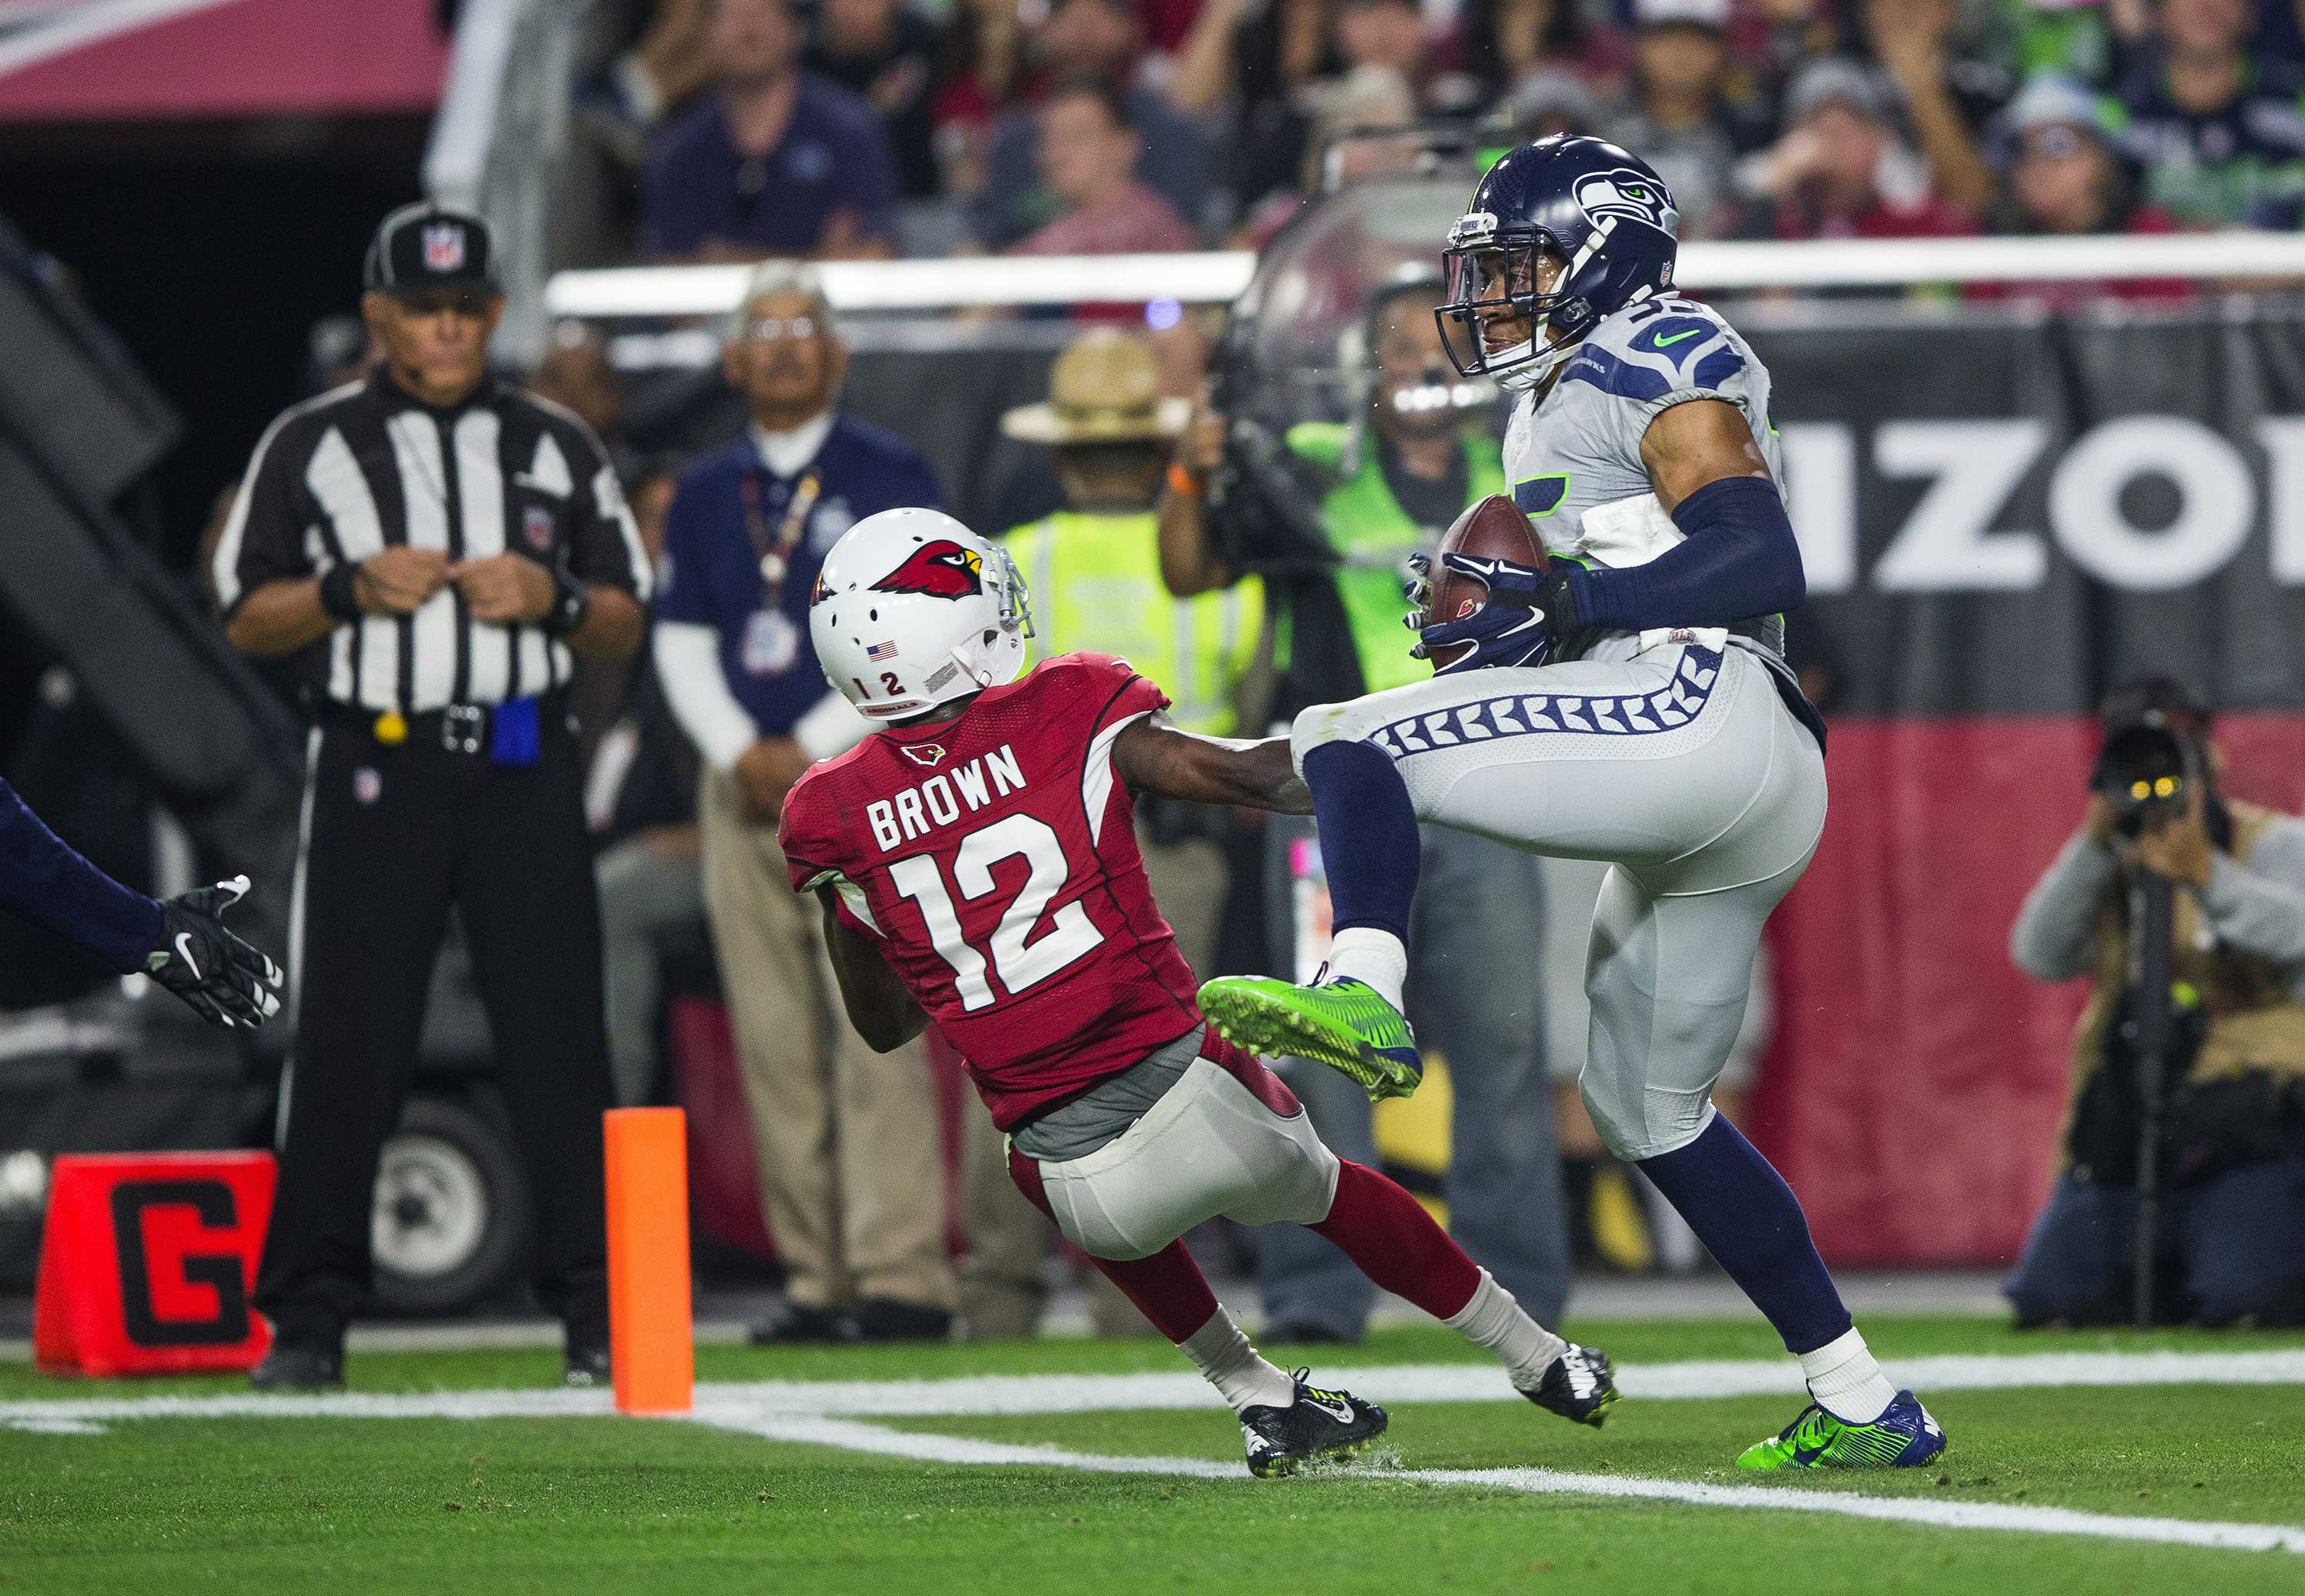 Seattle Seahawks' DeShawn Shead intercepts a pass intended for Arizona Cardinals' John Brown at the goal line during the fourth quarter on Sunday, Jan. 3, 2016, at University of Phoenix Stadium in Glendale, Ariz. (Dean Rutz/Seattle Times/TNS)